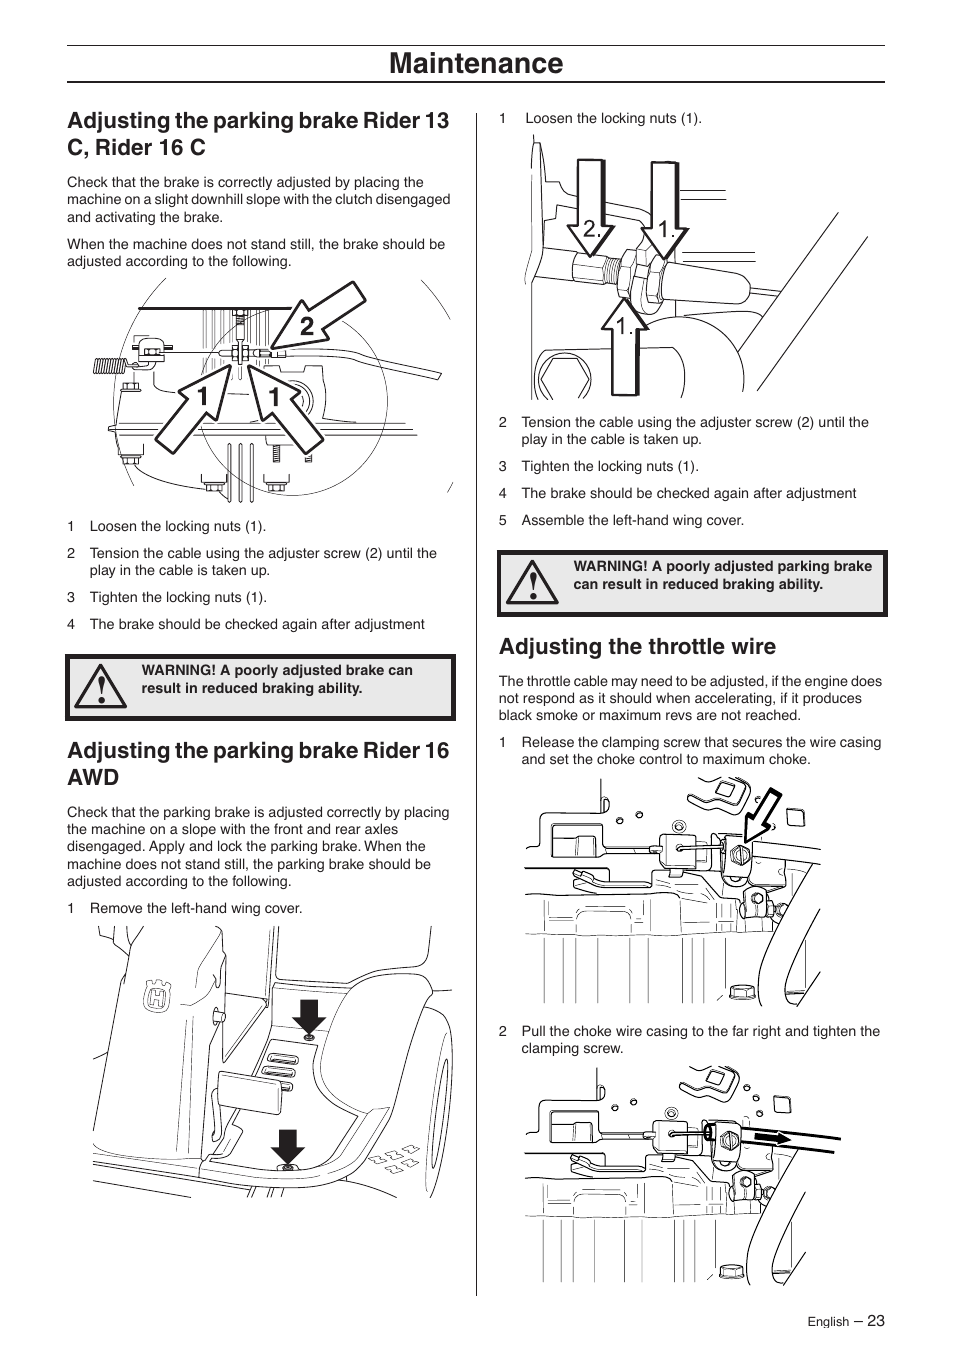 Adjusting the parking brake rider 13 c, rider 16 c, Adjusting the parking  brake rider 16 awd, Adjusting the throttle wire | Husqvarna 16 AWD User  Manual ...